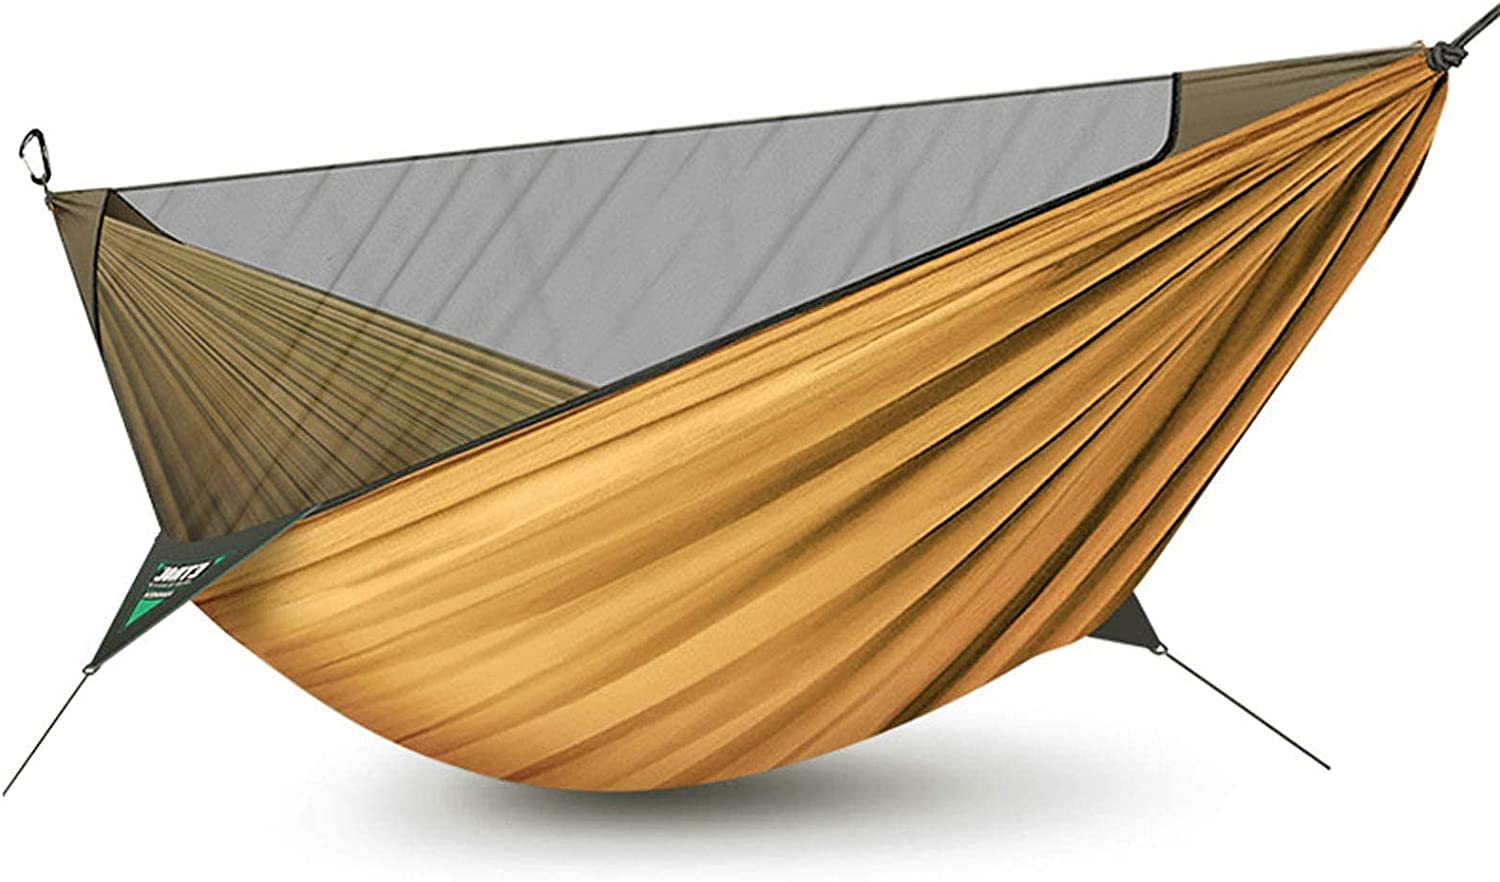 RVTYR Camping Hammock New product!! Travel Parachu Ranking TOP7 Quick-Drying Net Breathable